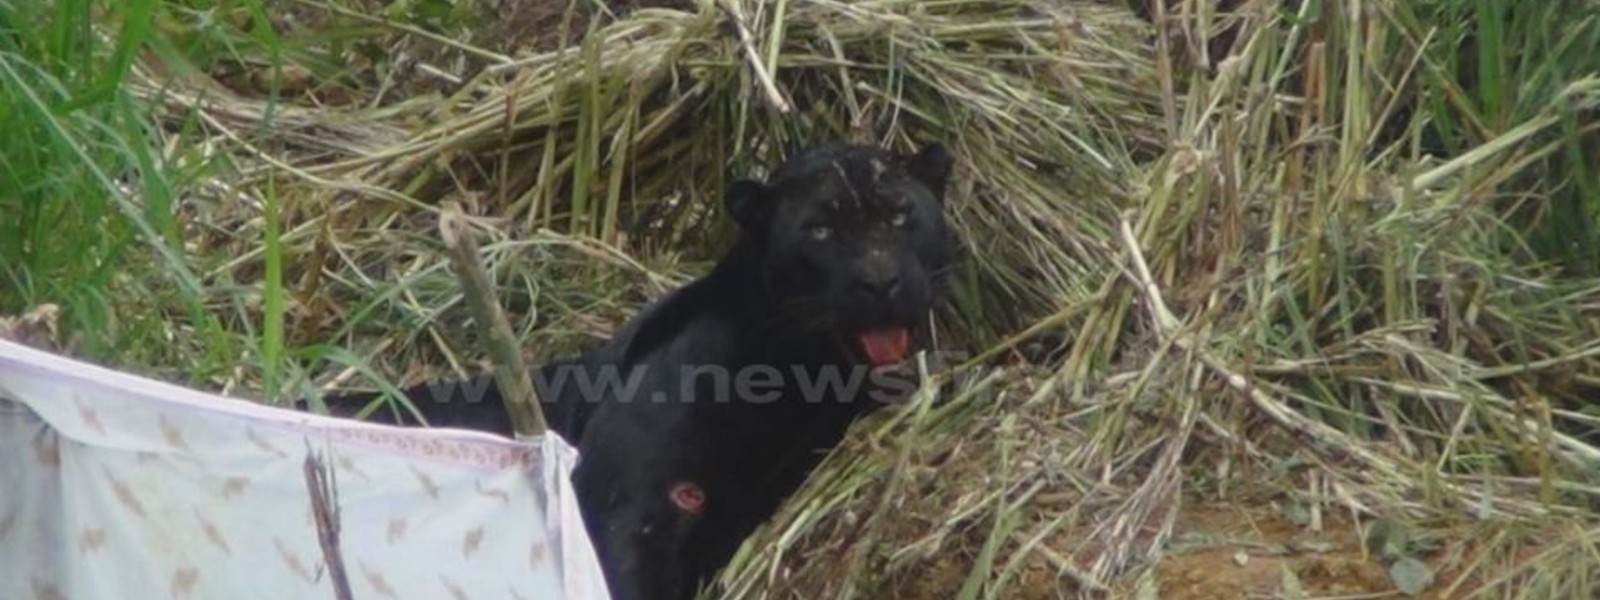 Rare Black Leopard recently rescued from a snare dies